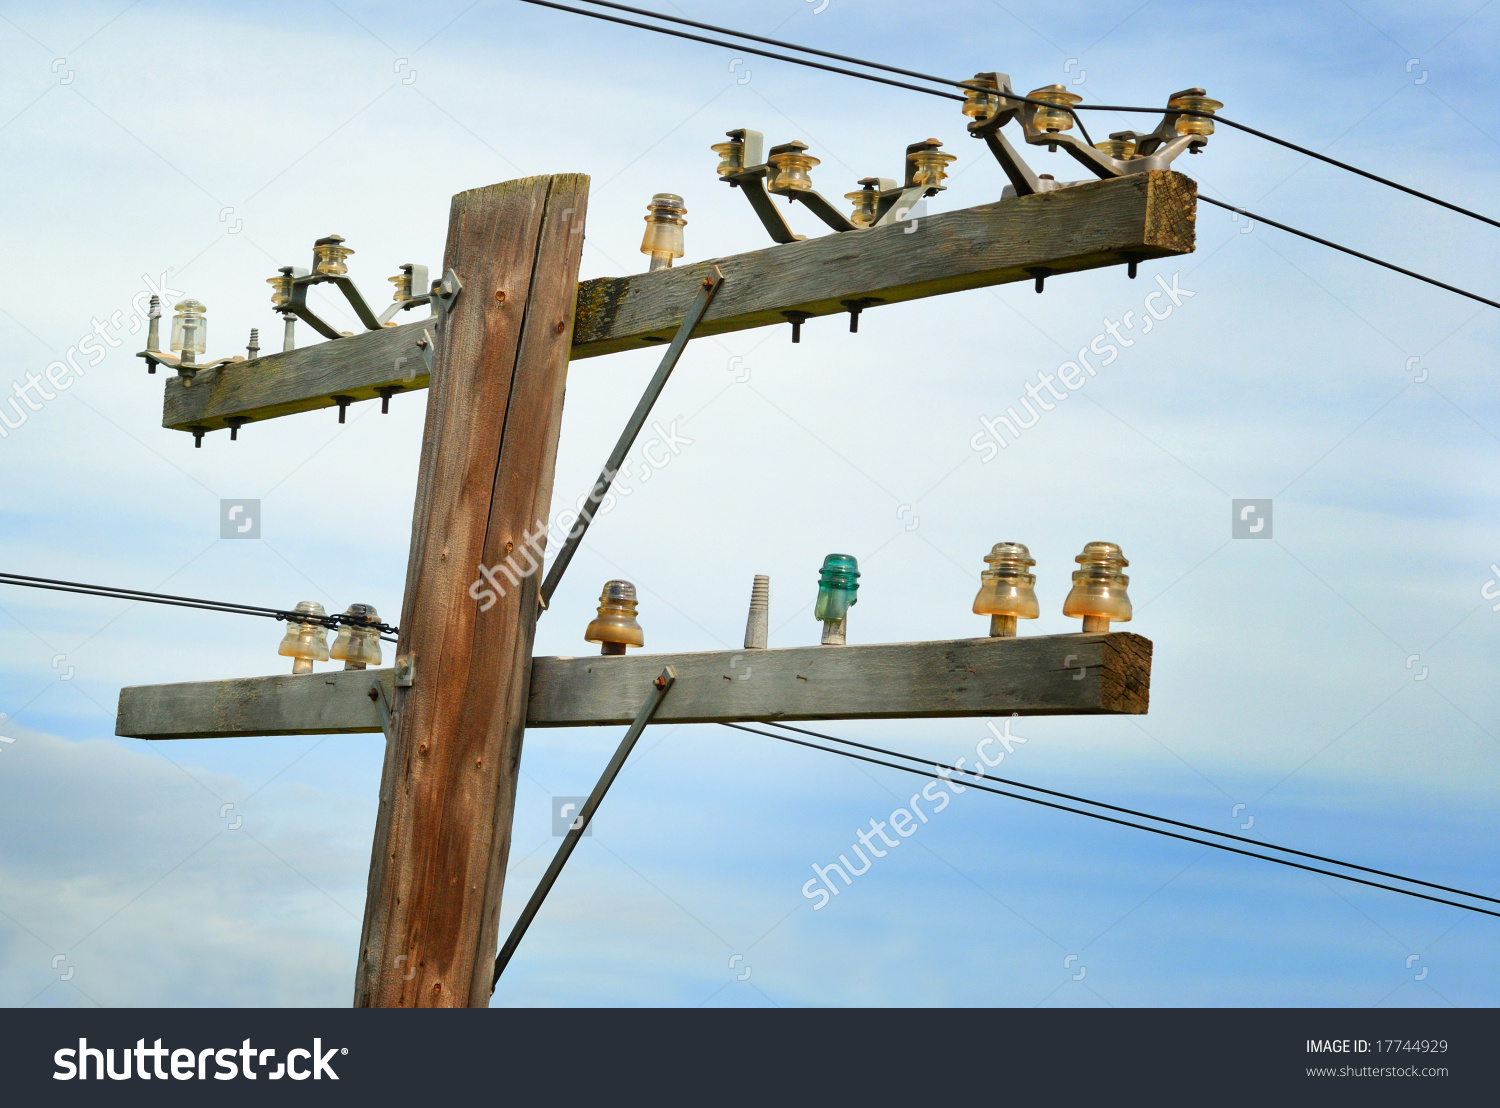 Old wooden telephone pole vintage glass stock photo for Glass telephone pole insulators